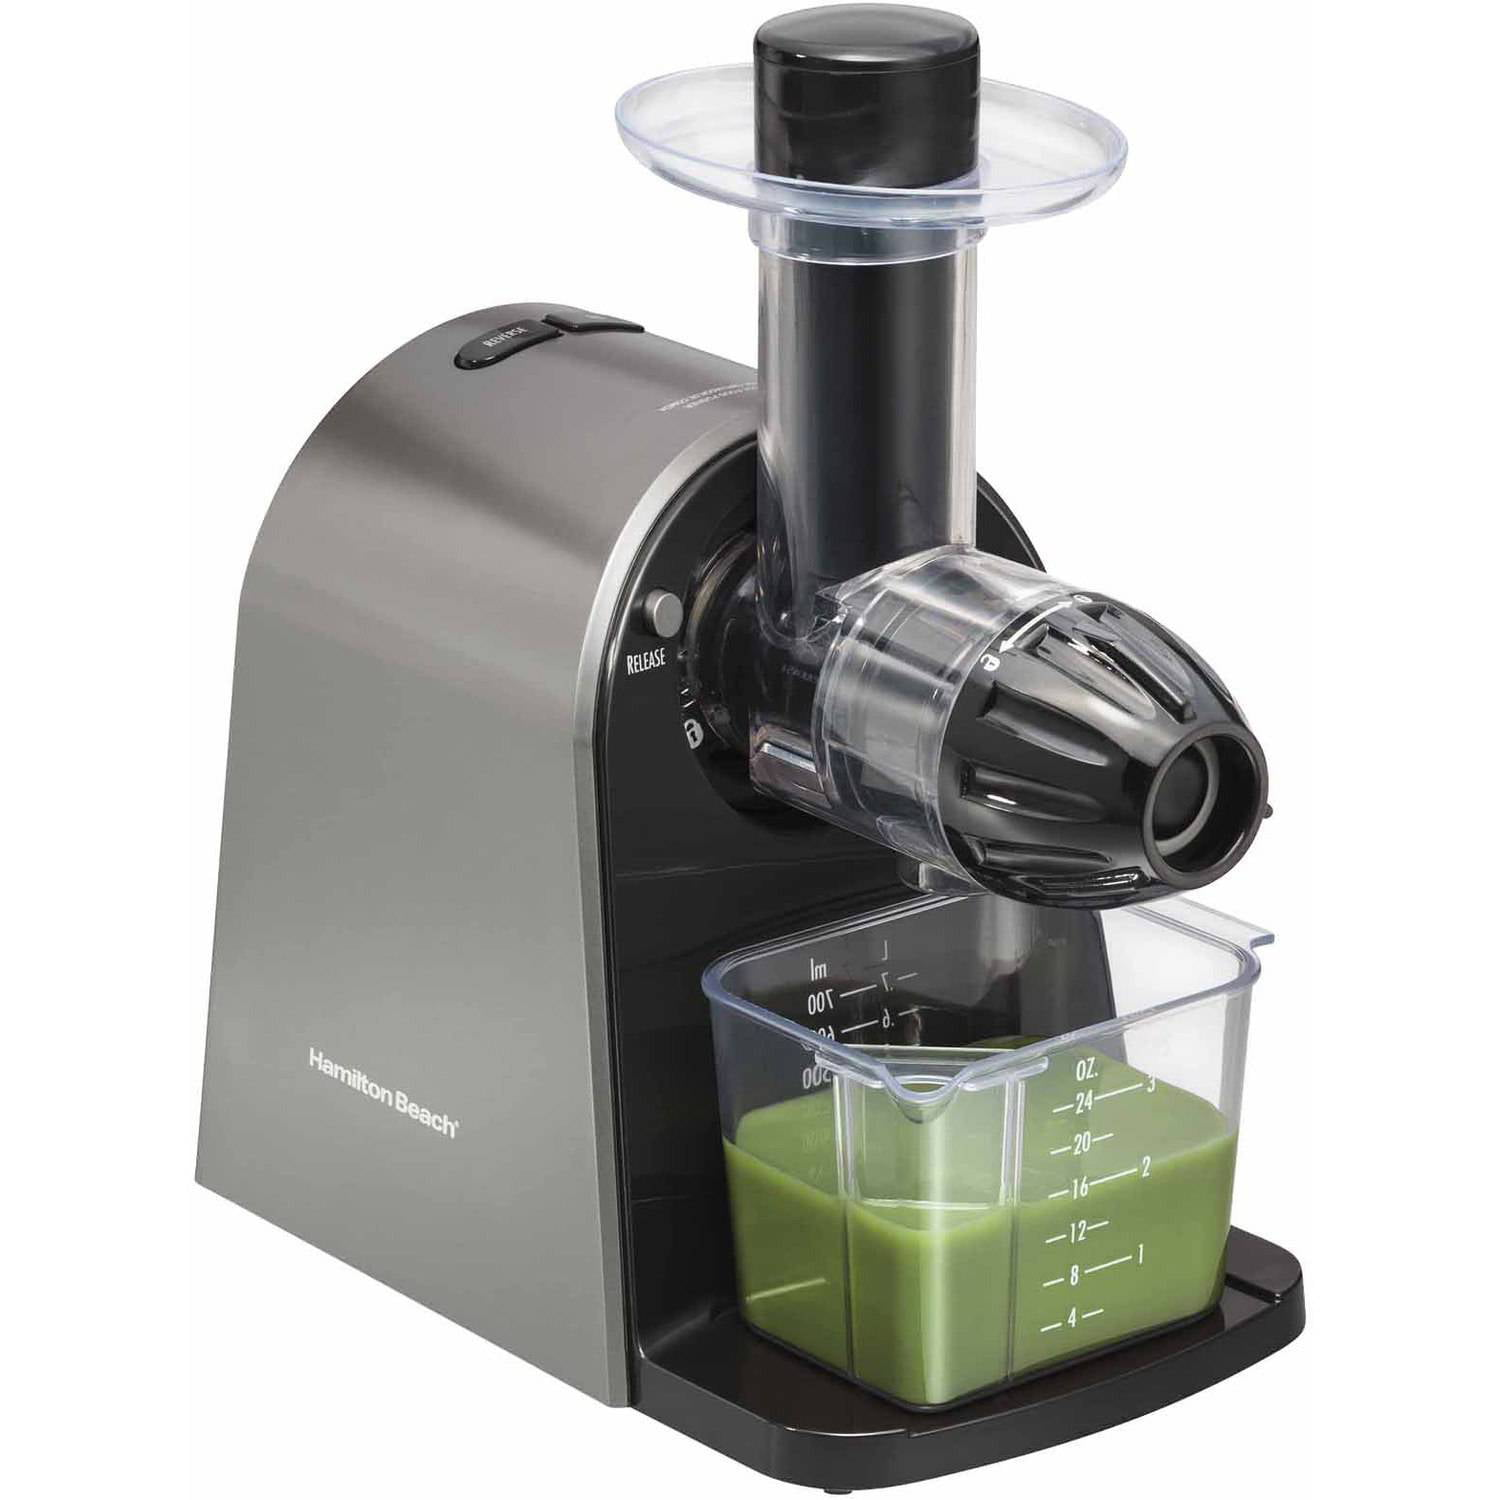 Is Slow Juicing The Same As Cold Pressed : Cold Press Juicer Machine - Masticating Juicer Slow Juice ...